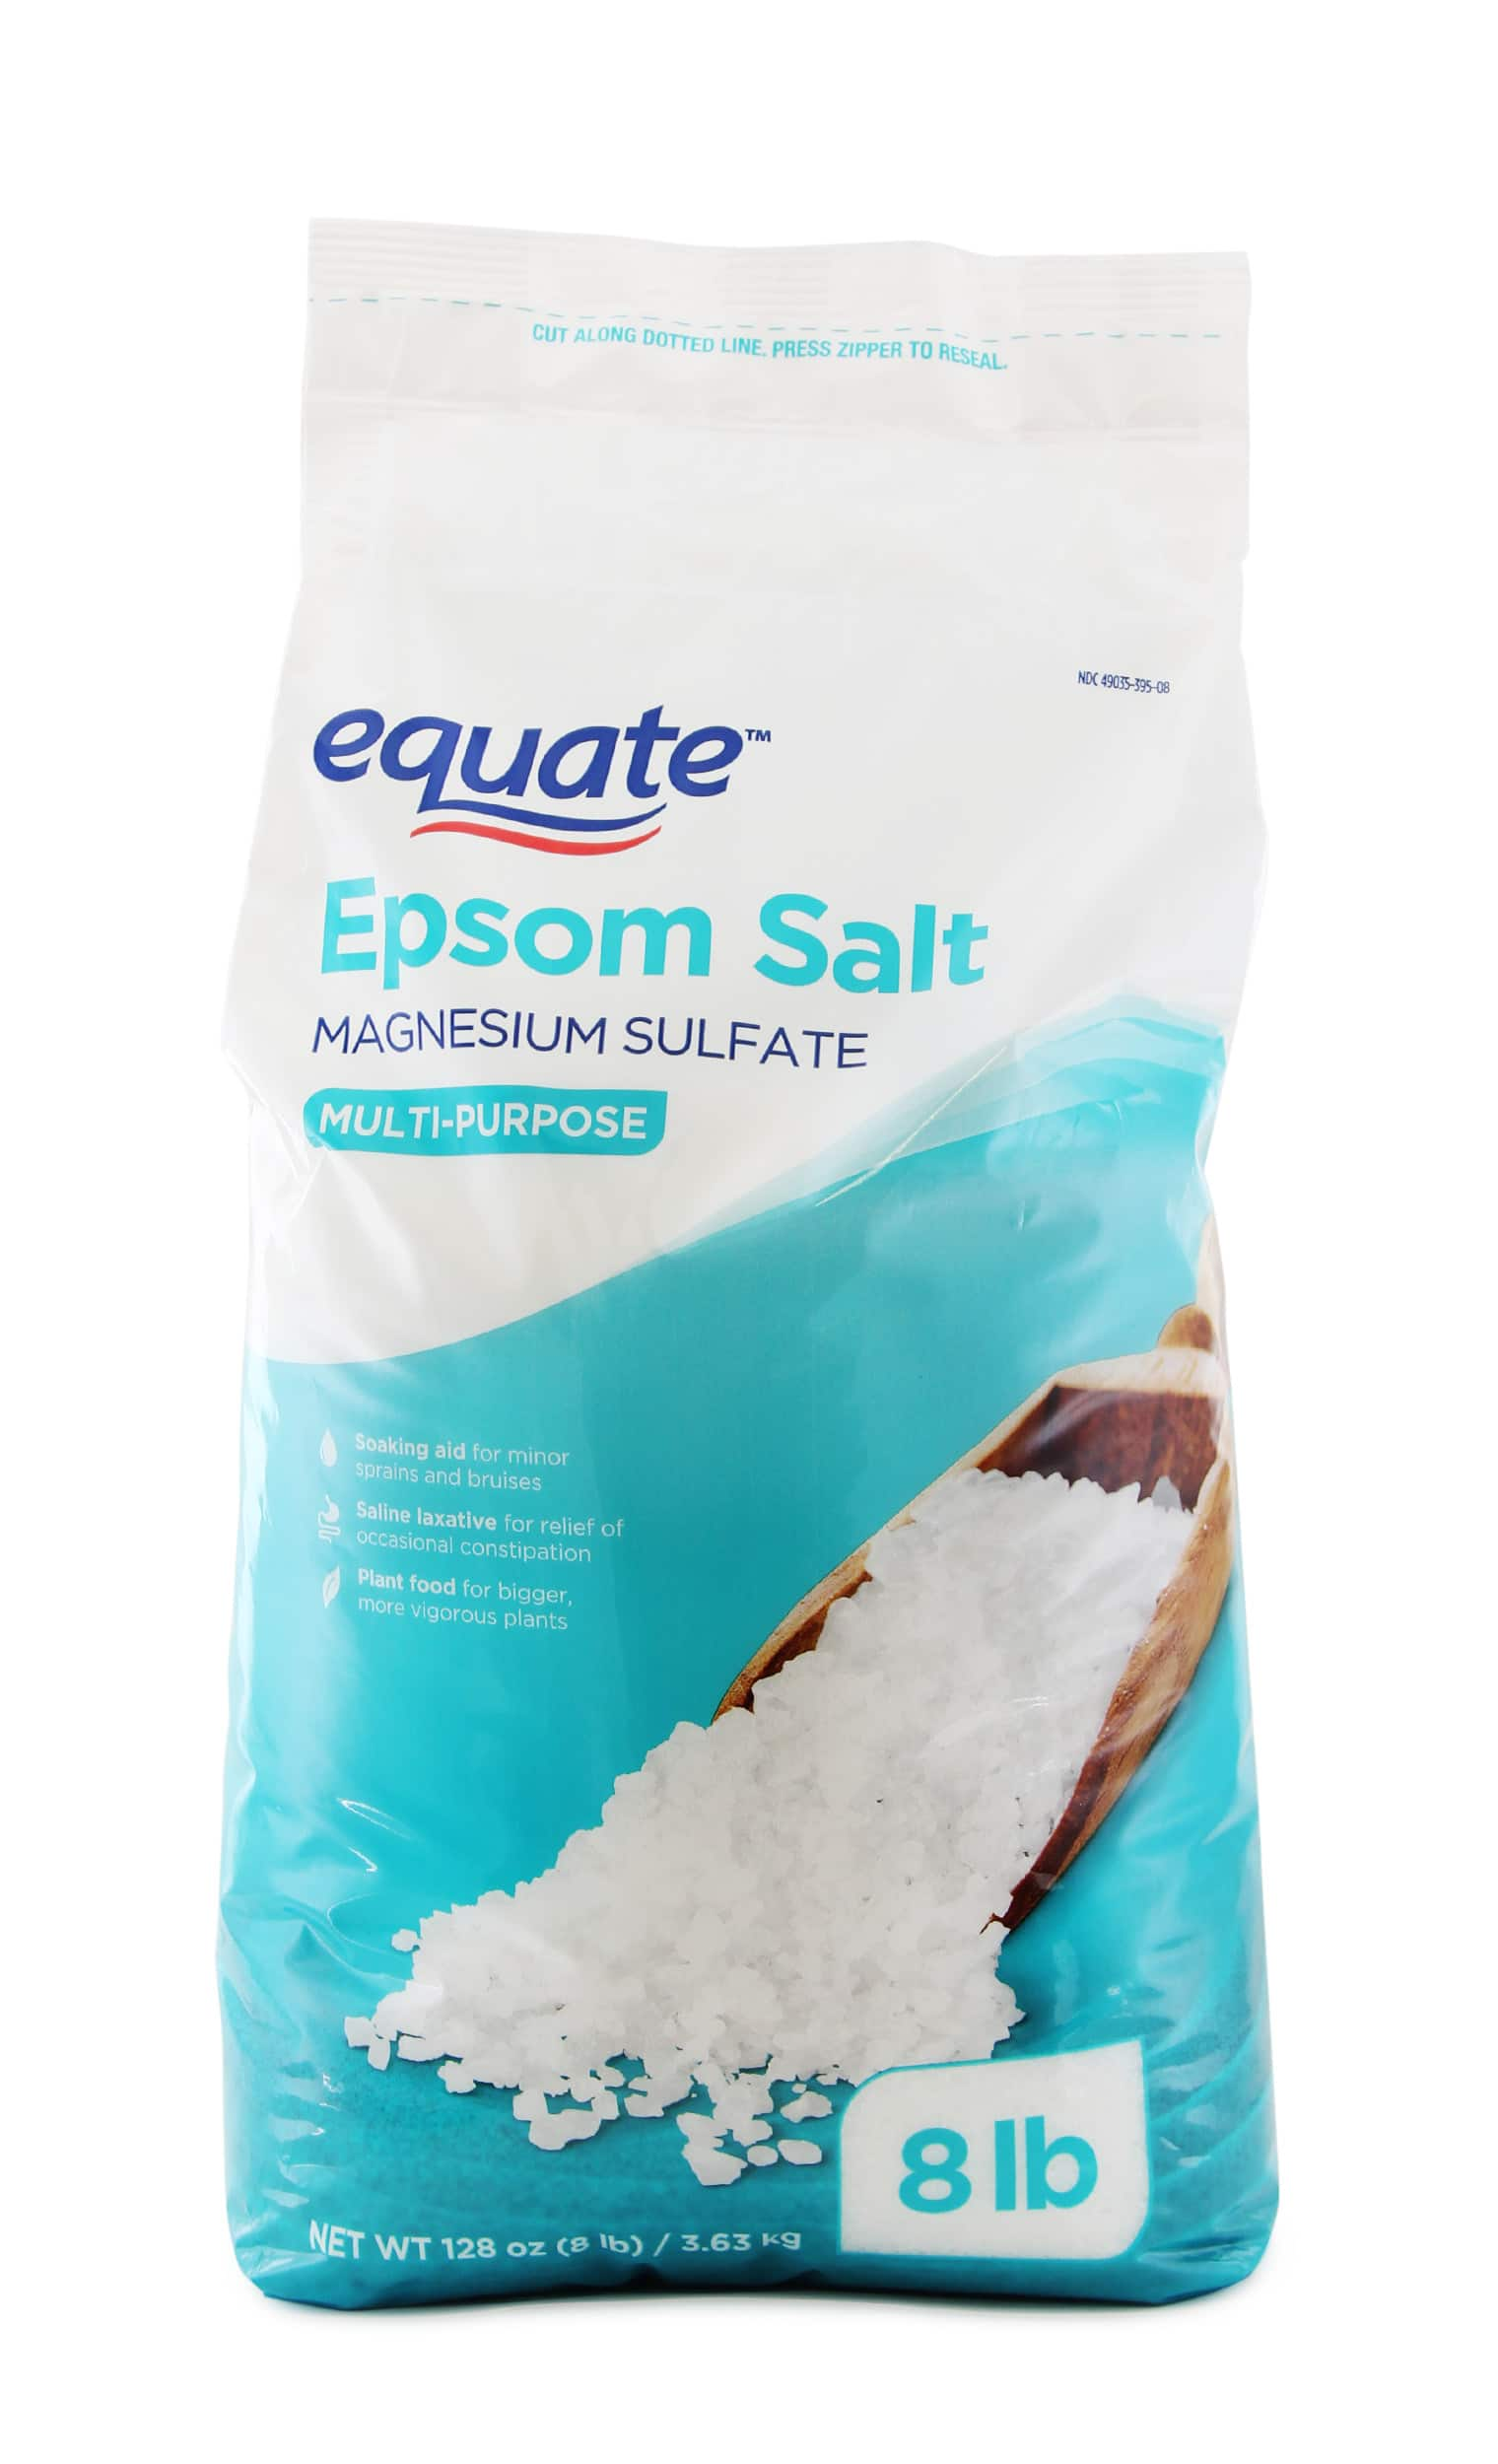 Epsom Salt 8lb for $5; Alaska Fish Plant Fertilizer 32oz for $5.86